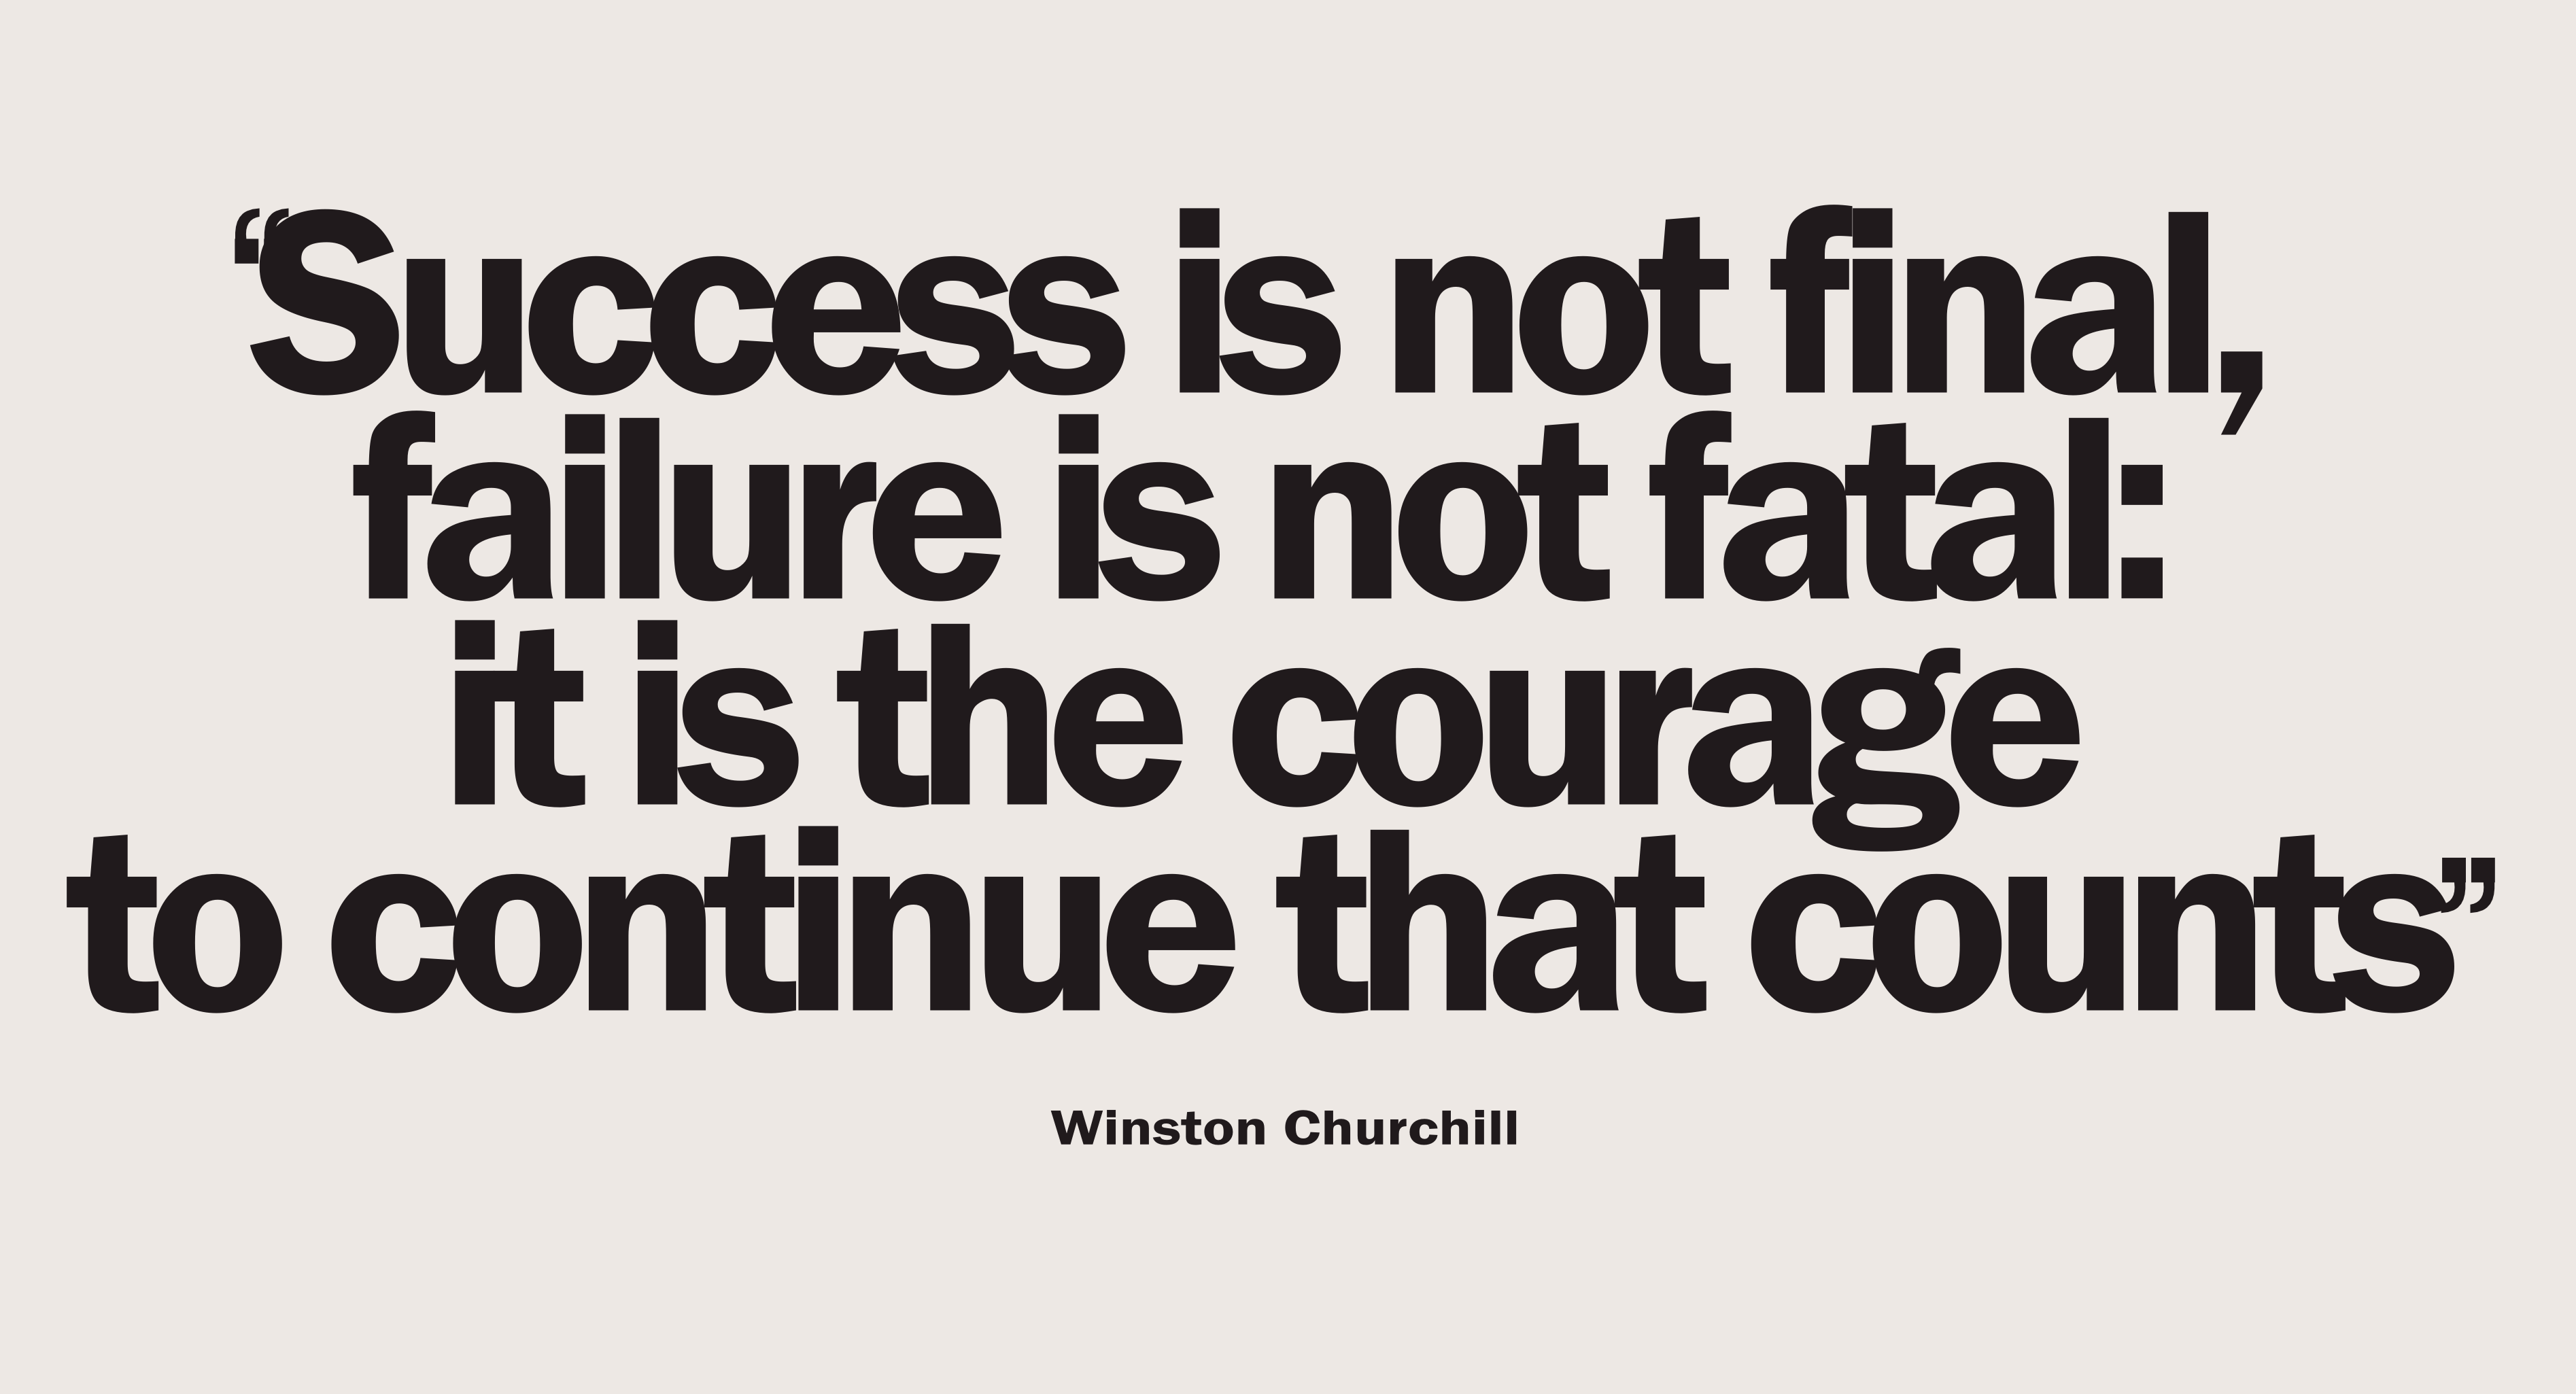 Quotes For A Successful Life Inspirational Famous Successful People Quotes And Images About